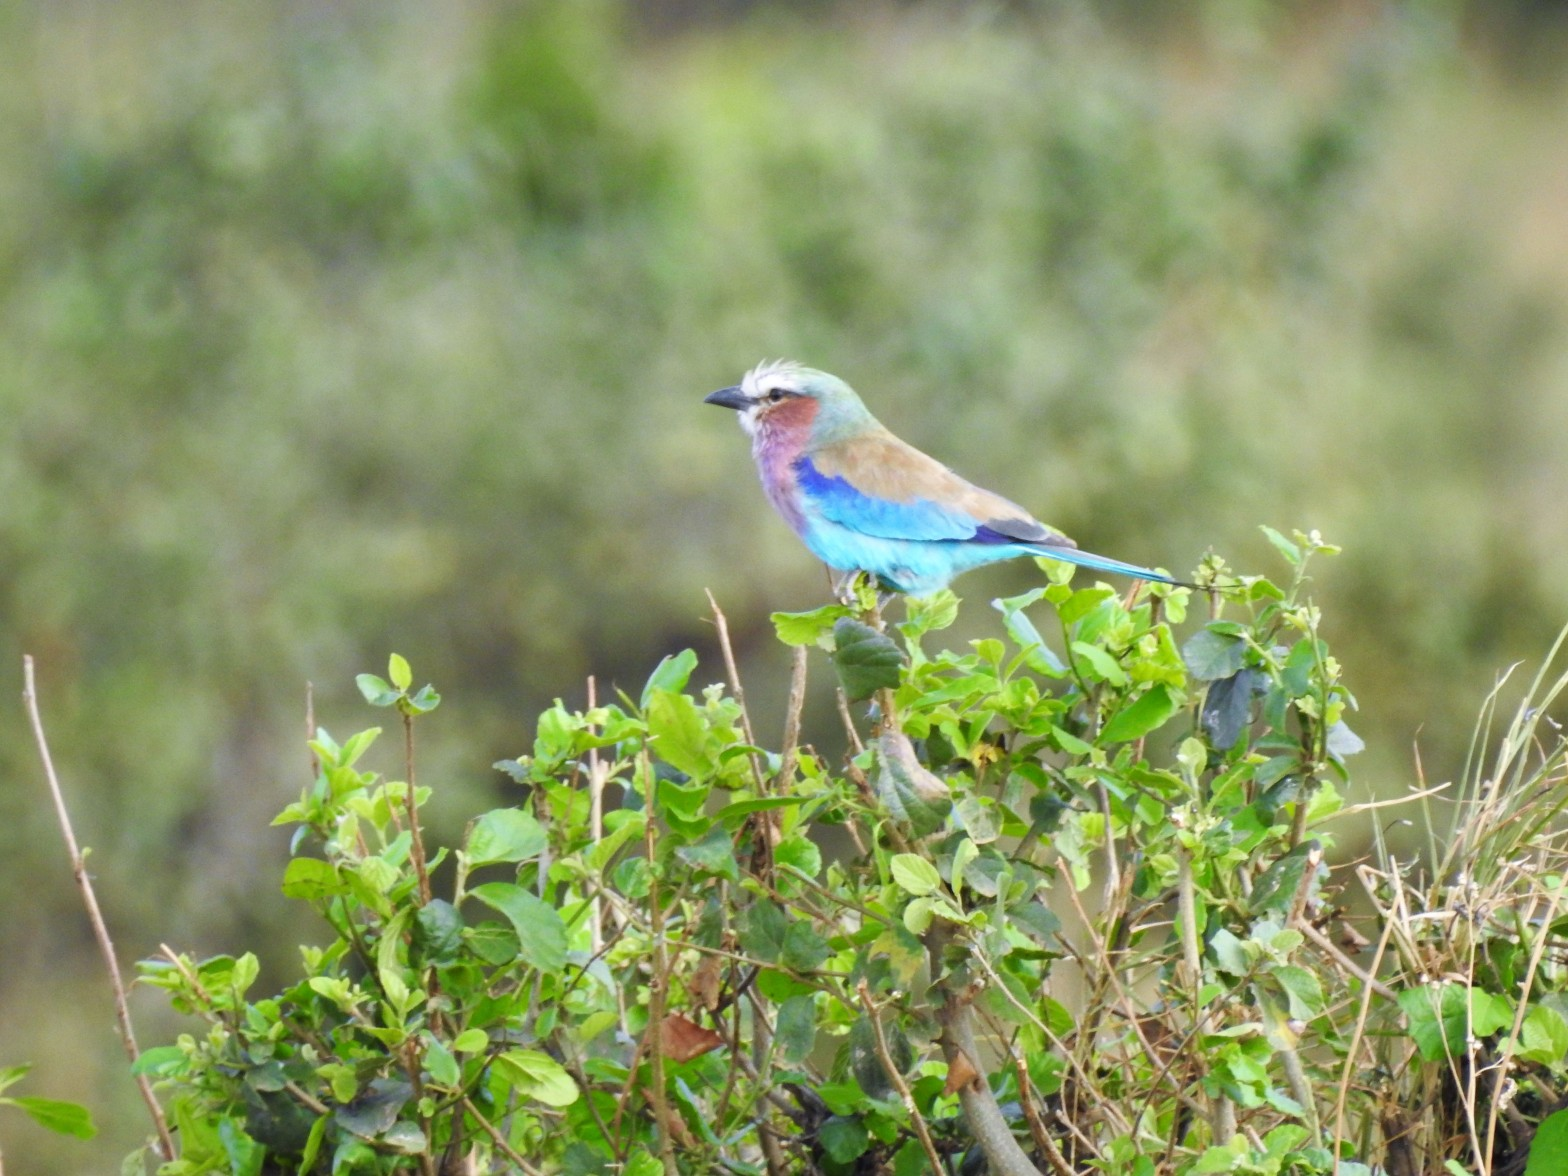 sunset, bird, lilac breasted roller